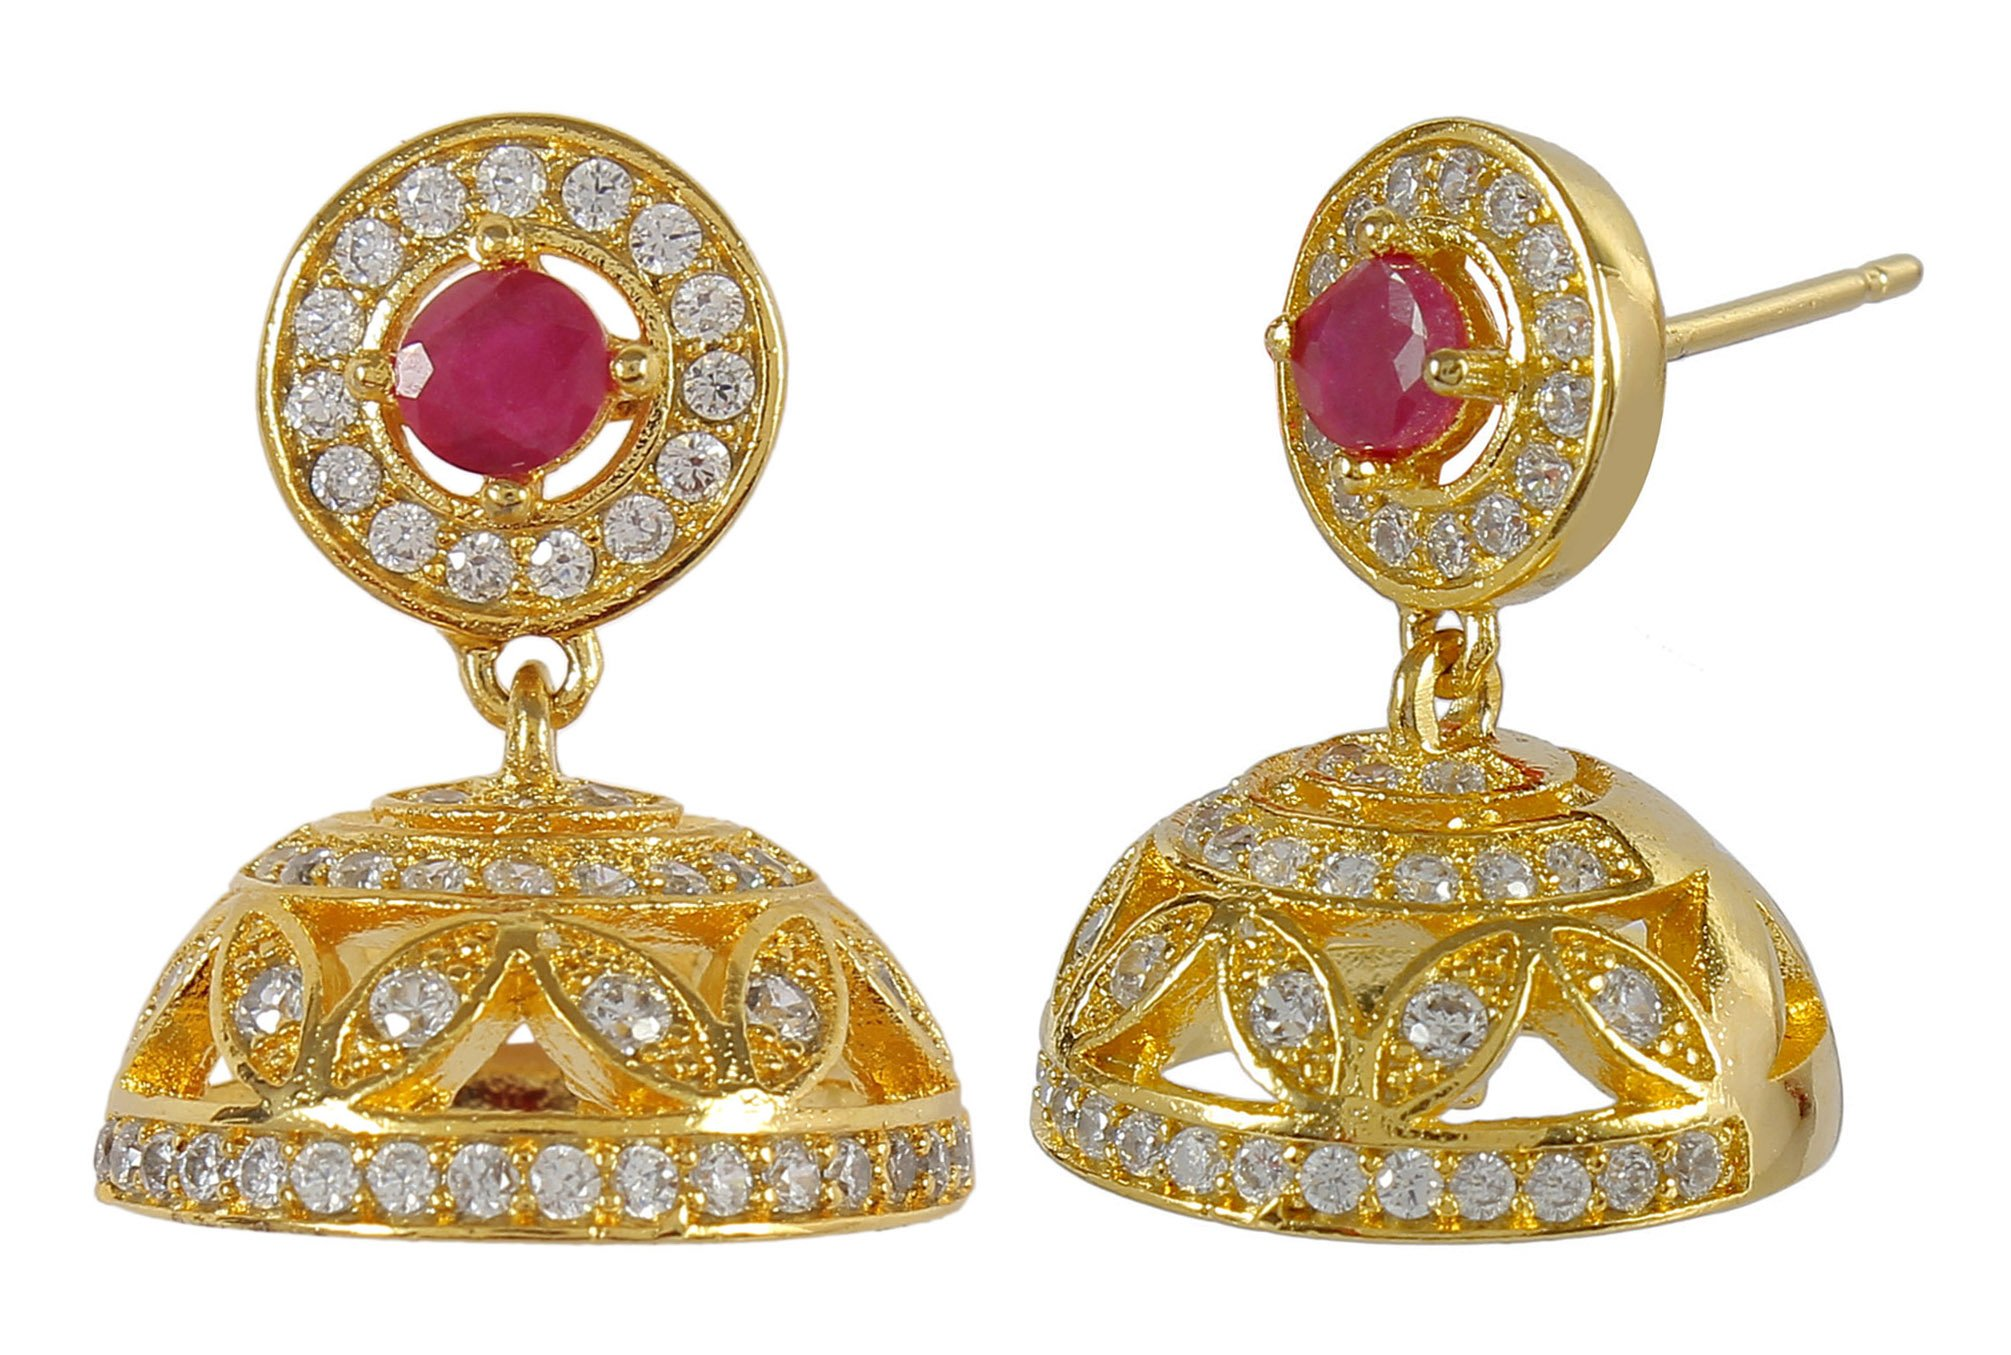 MUCH-MORE Amazing Bollywood Style Diamontick Cuff Earring Partywear Indian Jewelry (1003)